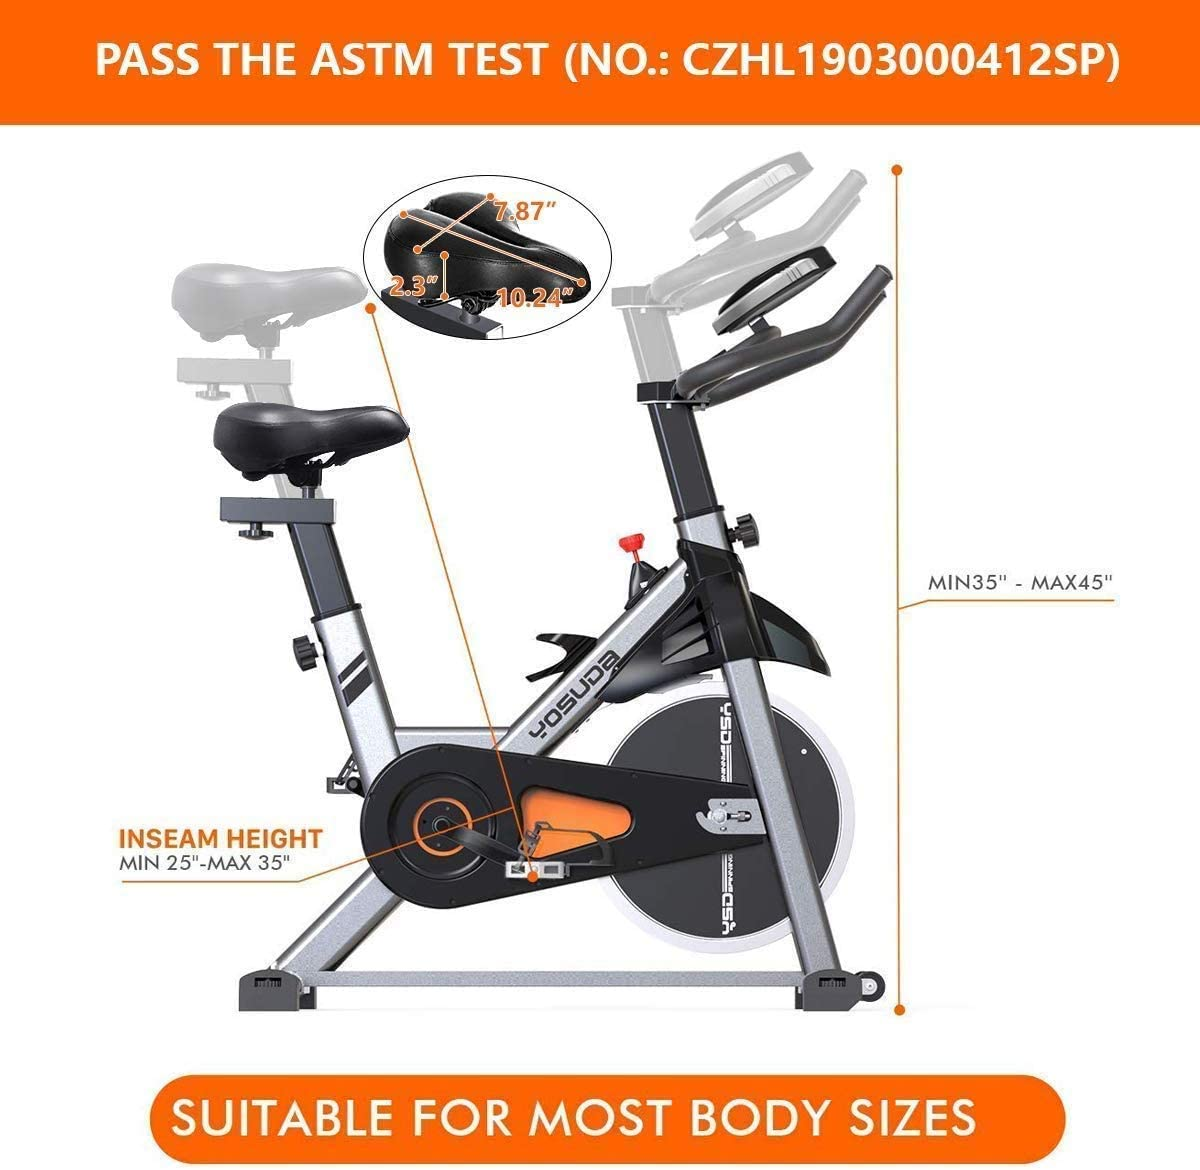 YOSUDA Indoor Cycling Bike Stationary - Cycle Bike with Ipad Mount and Comfortable Seat Cushion